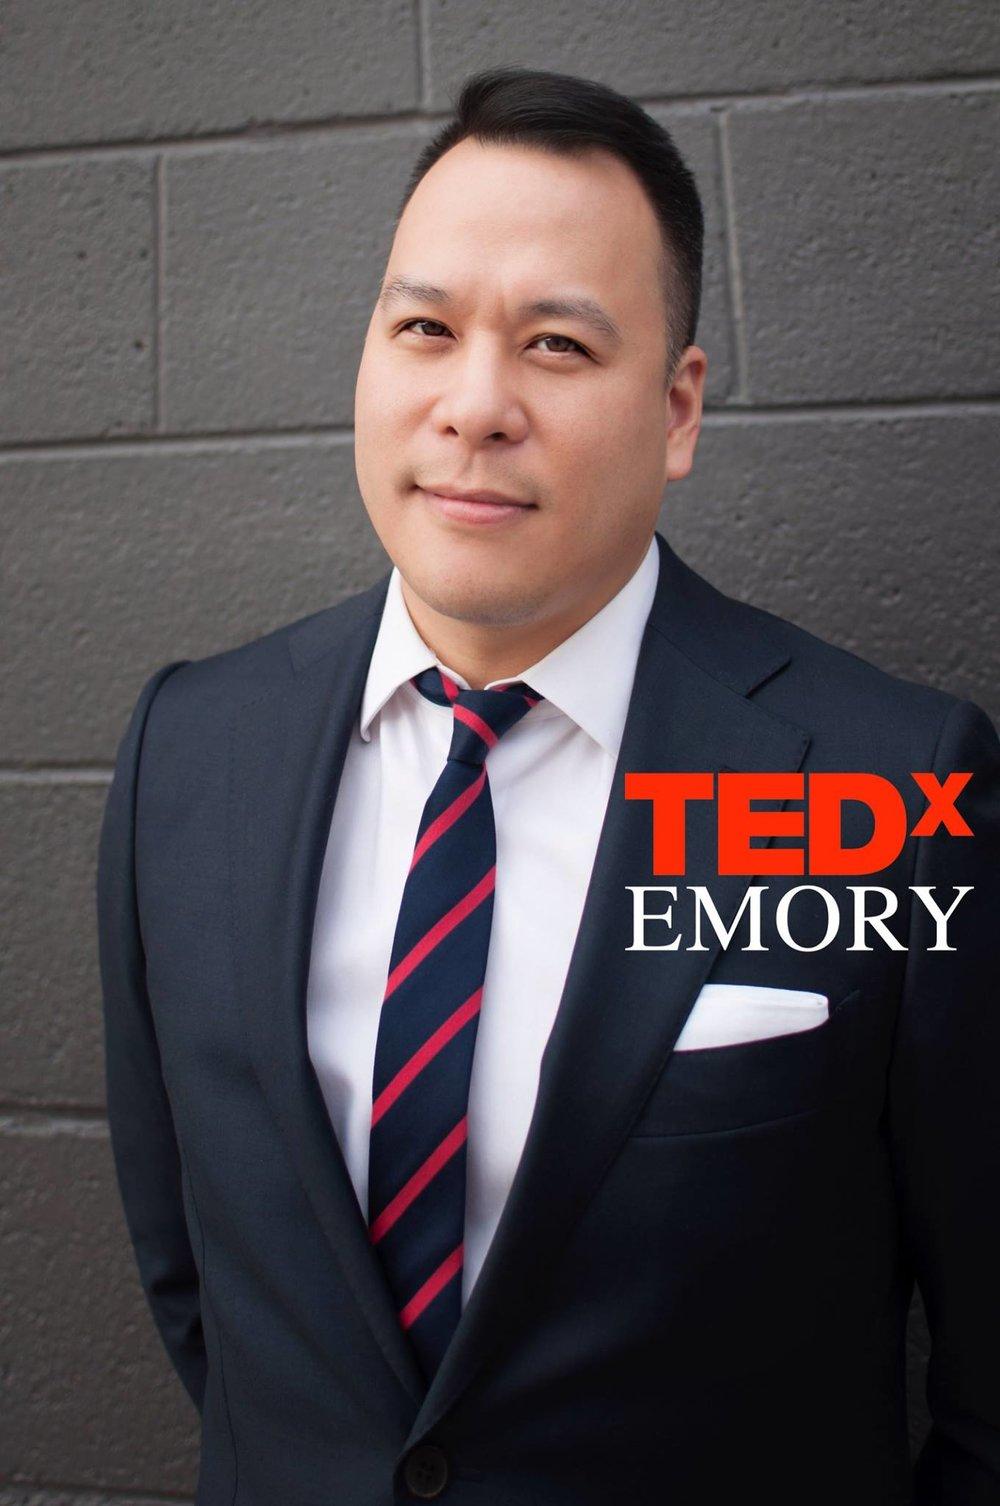 TEDXEMORY 2018: Solve For X featuring Yu-Kai Lin  this Saturday, February 24th  see more